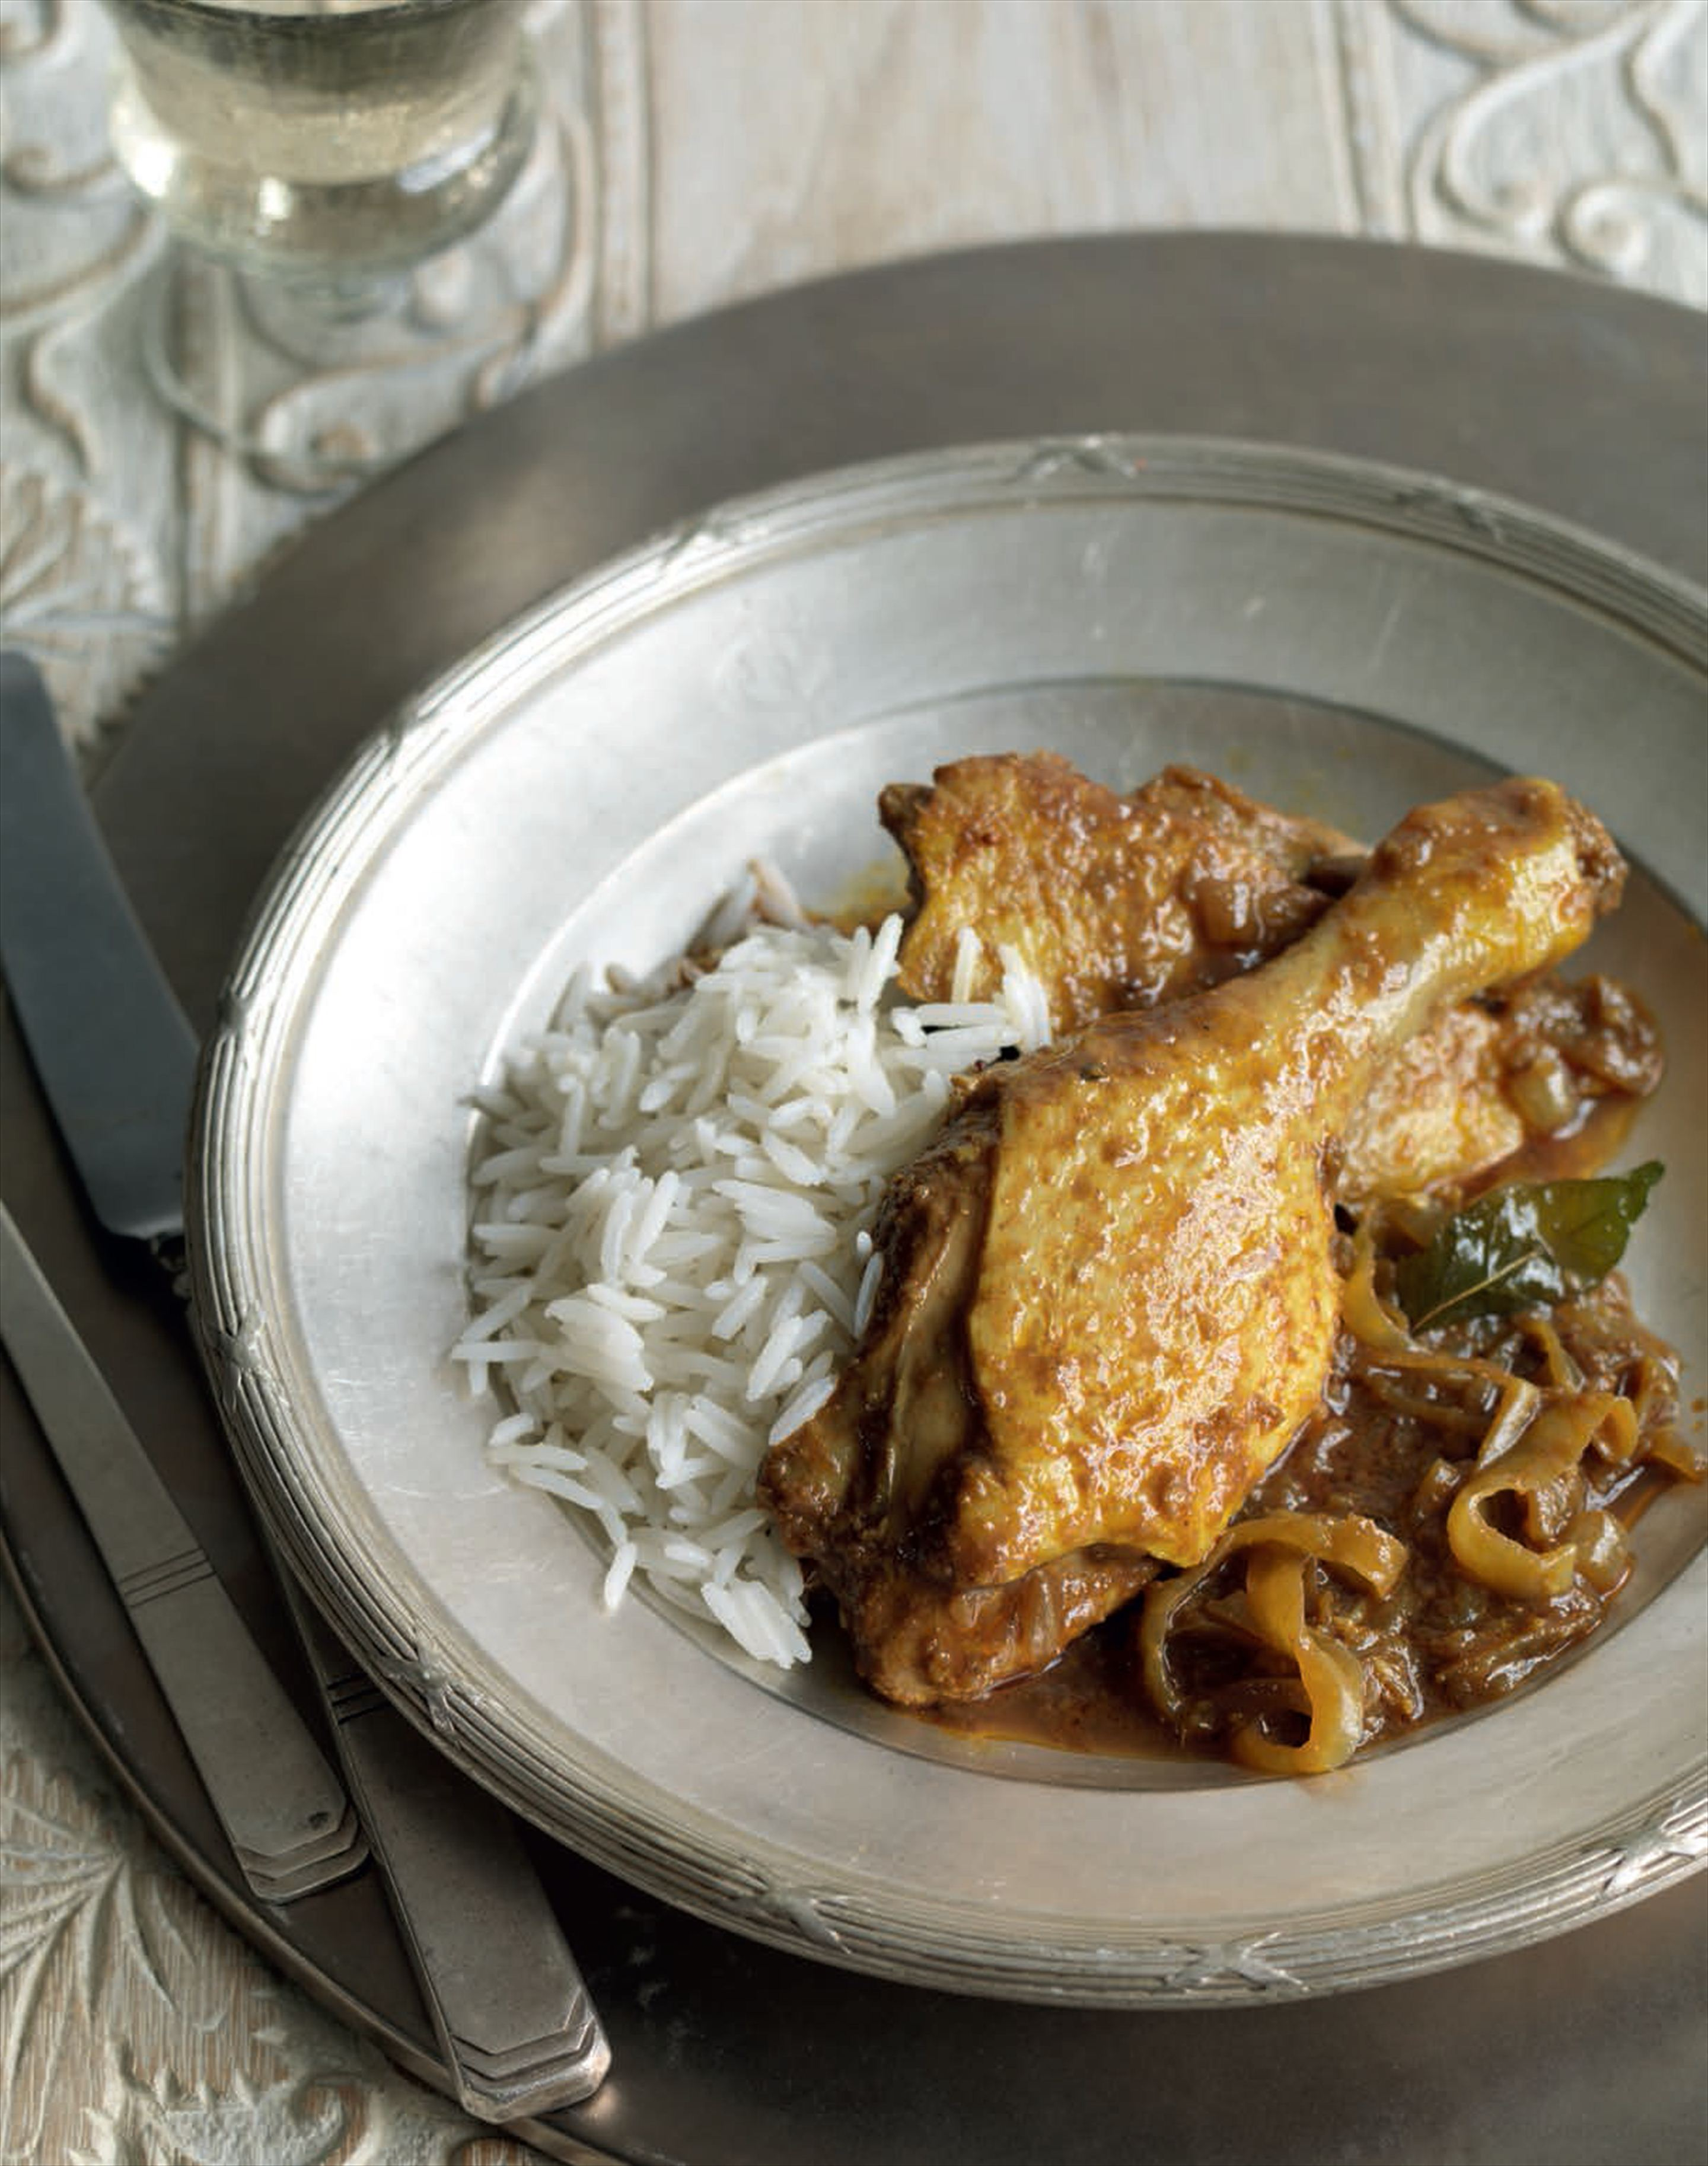 Tamarind duck curry